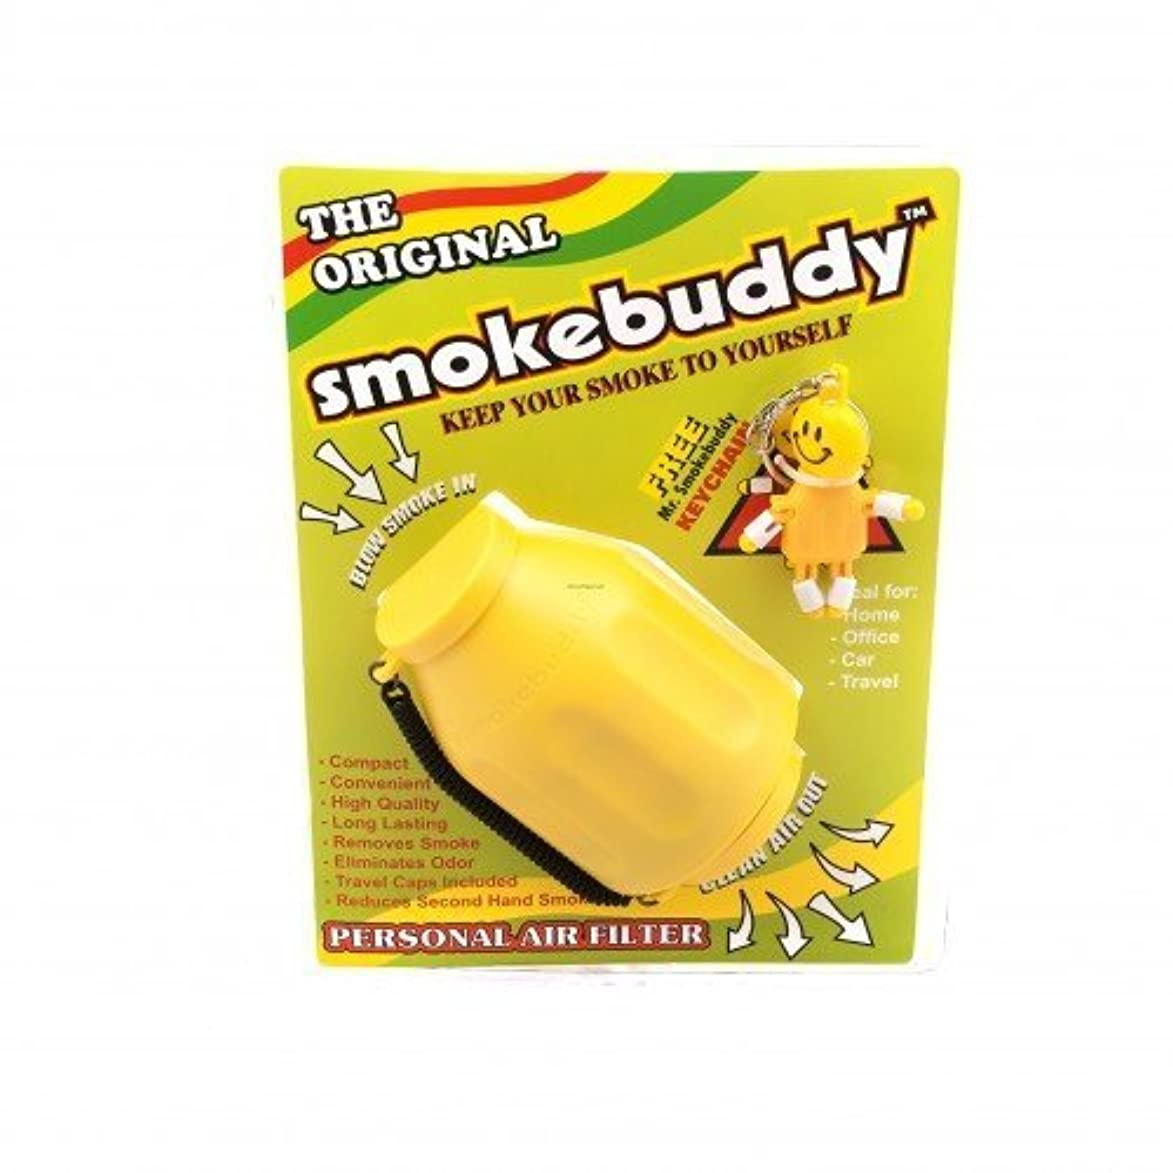 イエローSmoke Buddy – 個人Air Purifiery and Odor Diffuser by Smoke Buddy